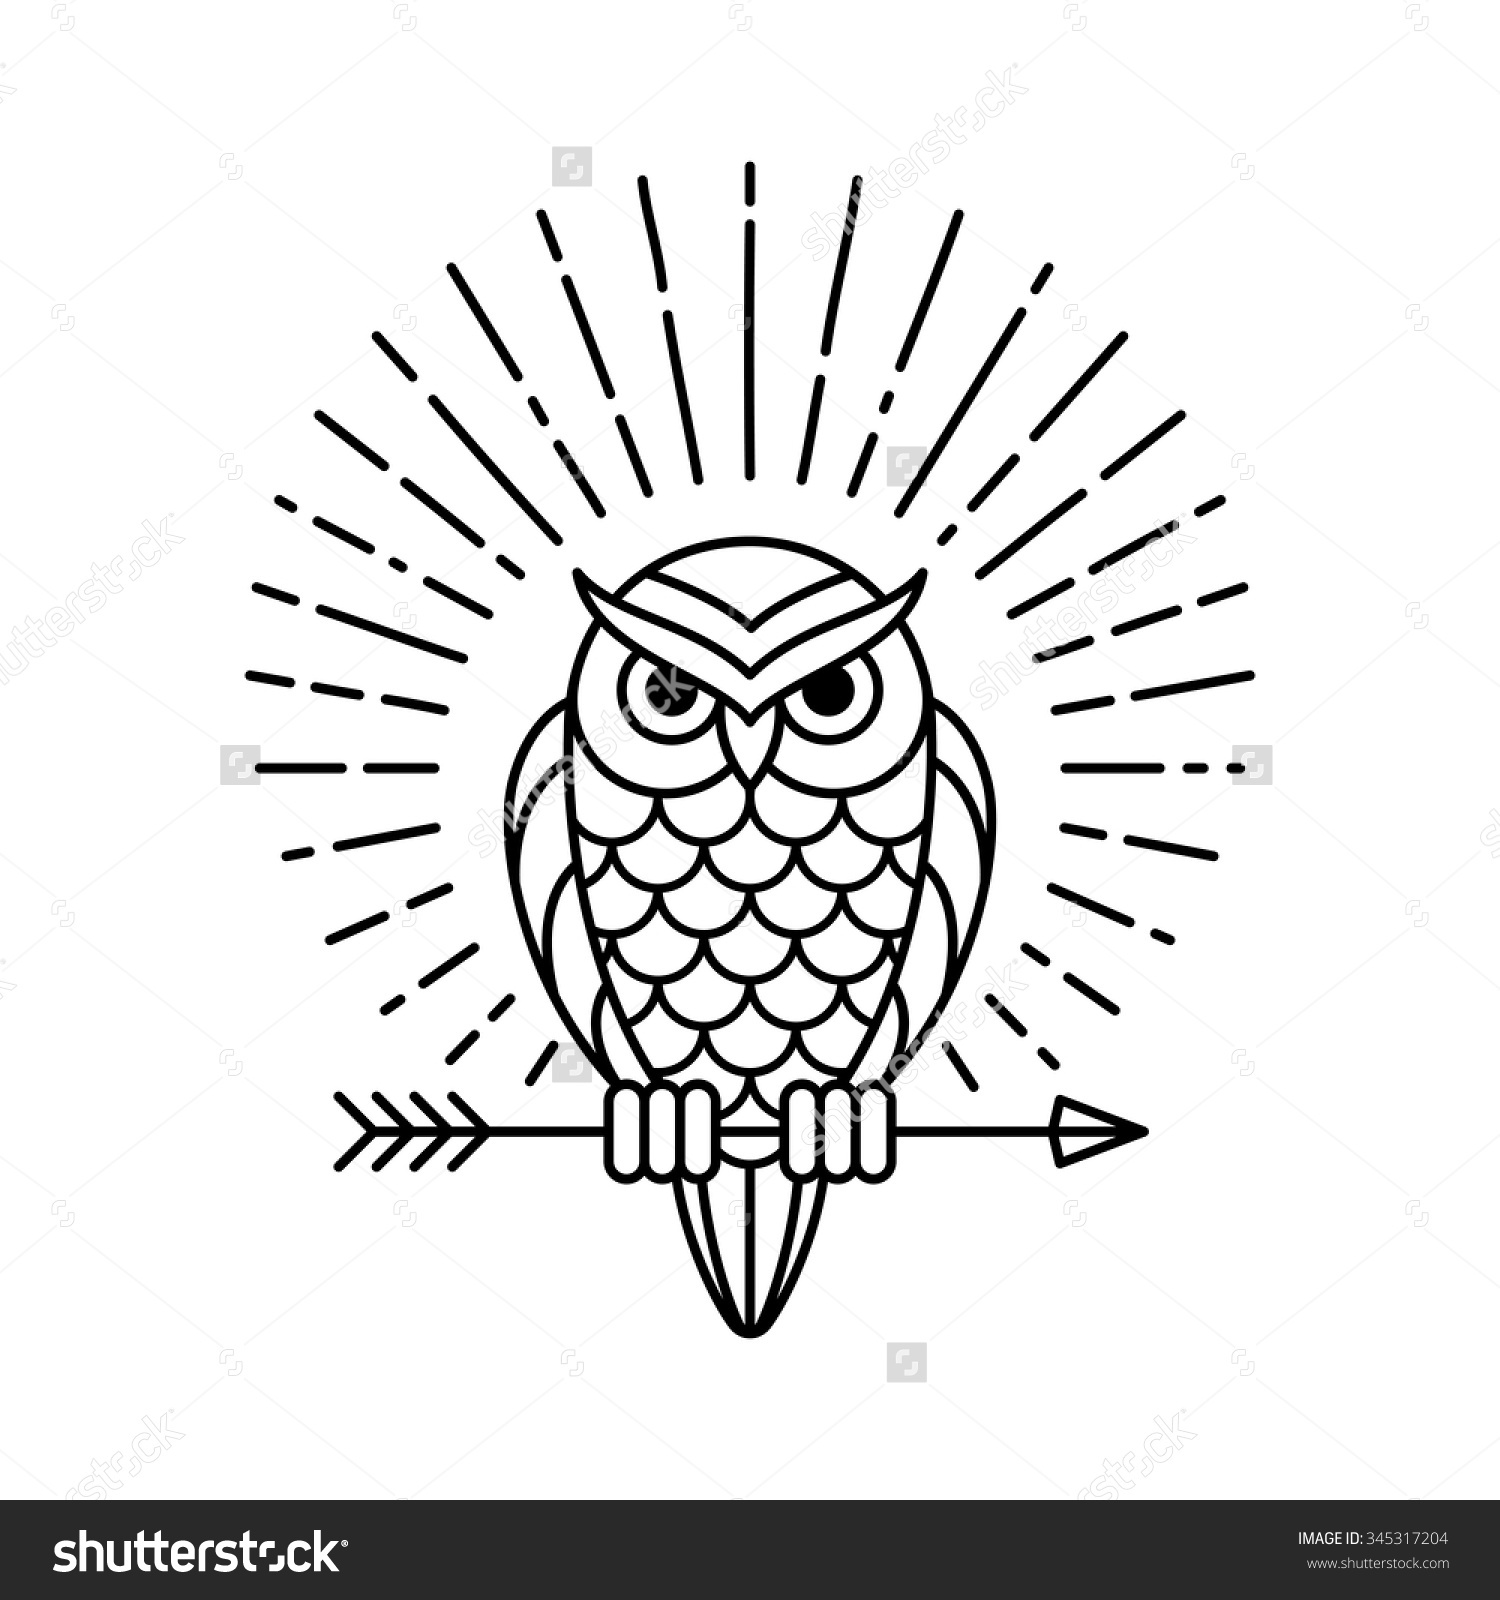 Owl Outline Emblem Geometric Hipster Style Stock Vector 345317204.